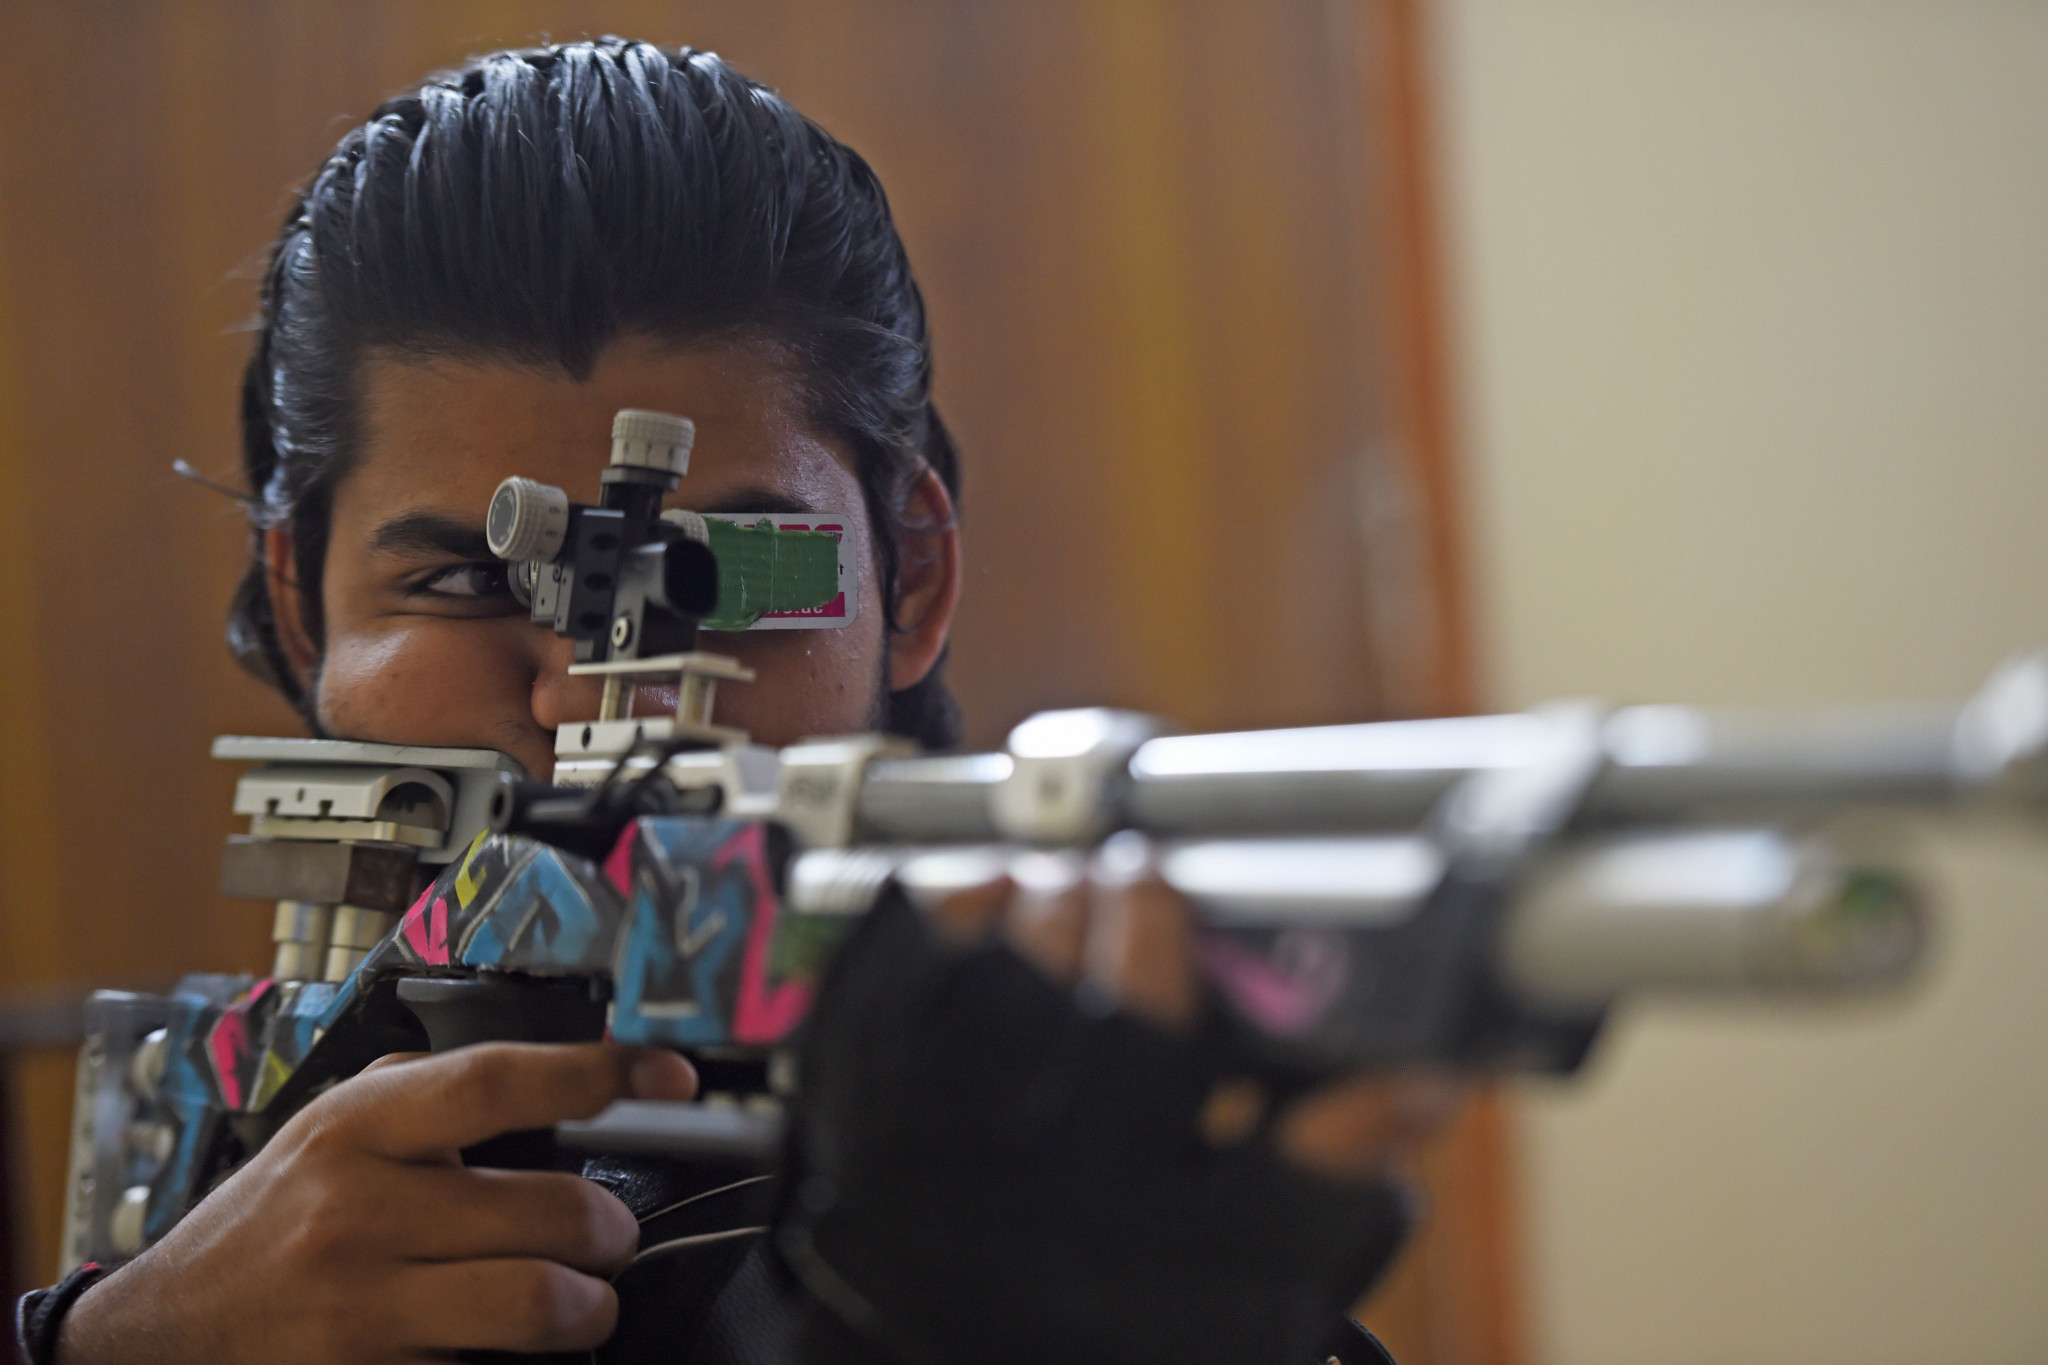 One shooter positive for COVID-19 as 10m air rifle qualifying begins ISSF World Cup in New Delhi